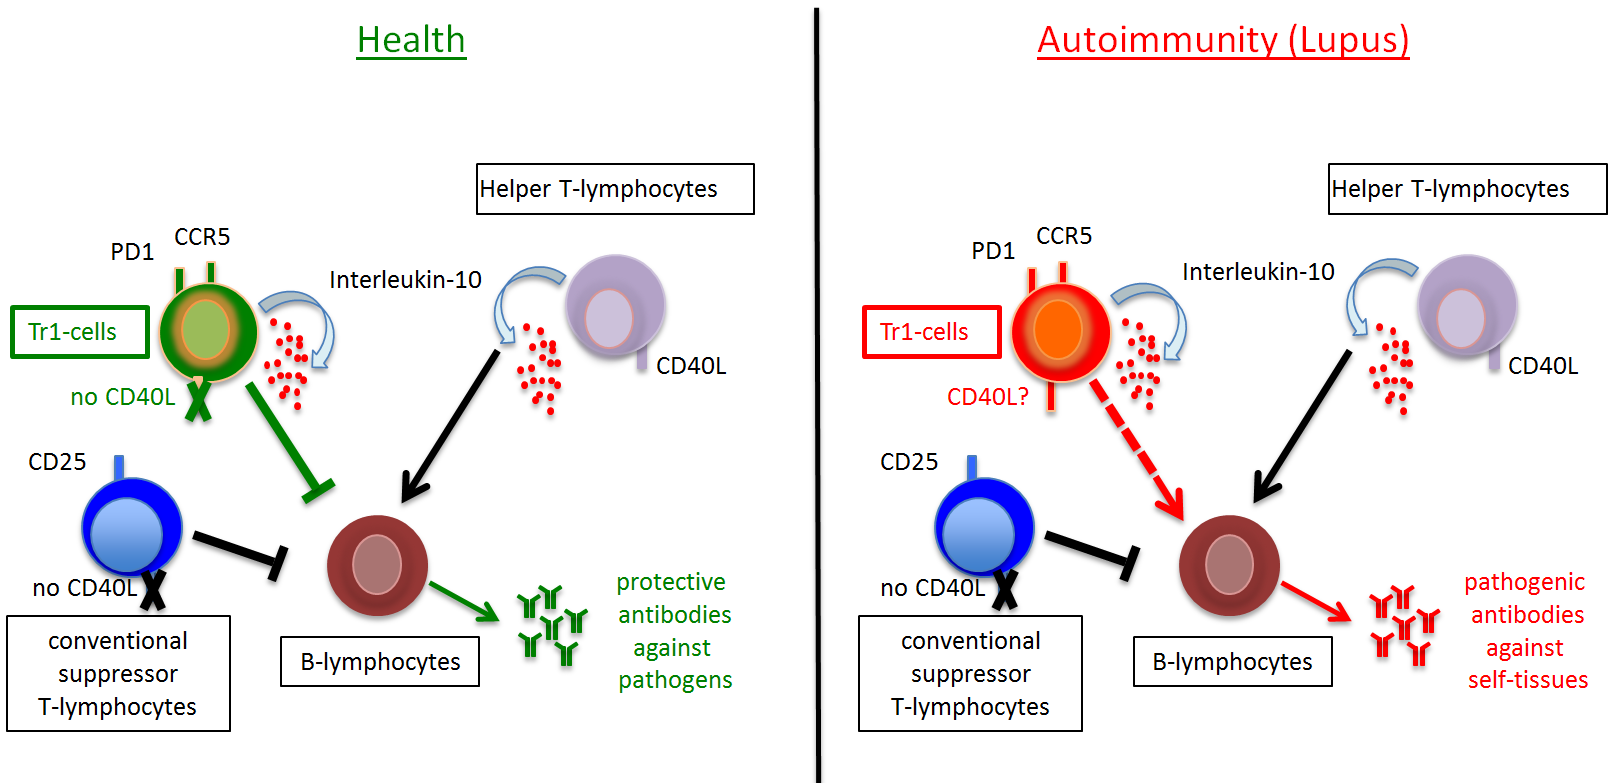 A functional defect of unconventional suppressor T-lymphocytes ...